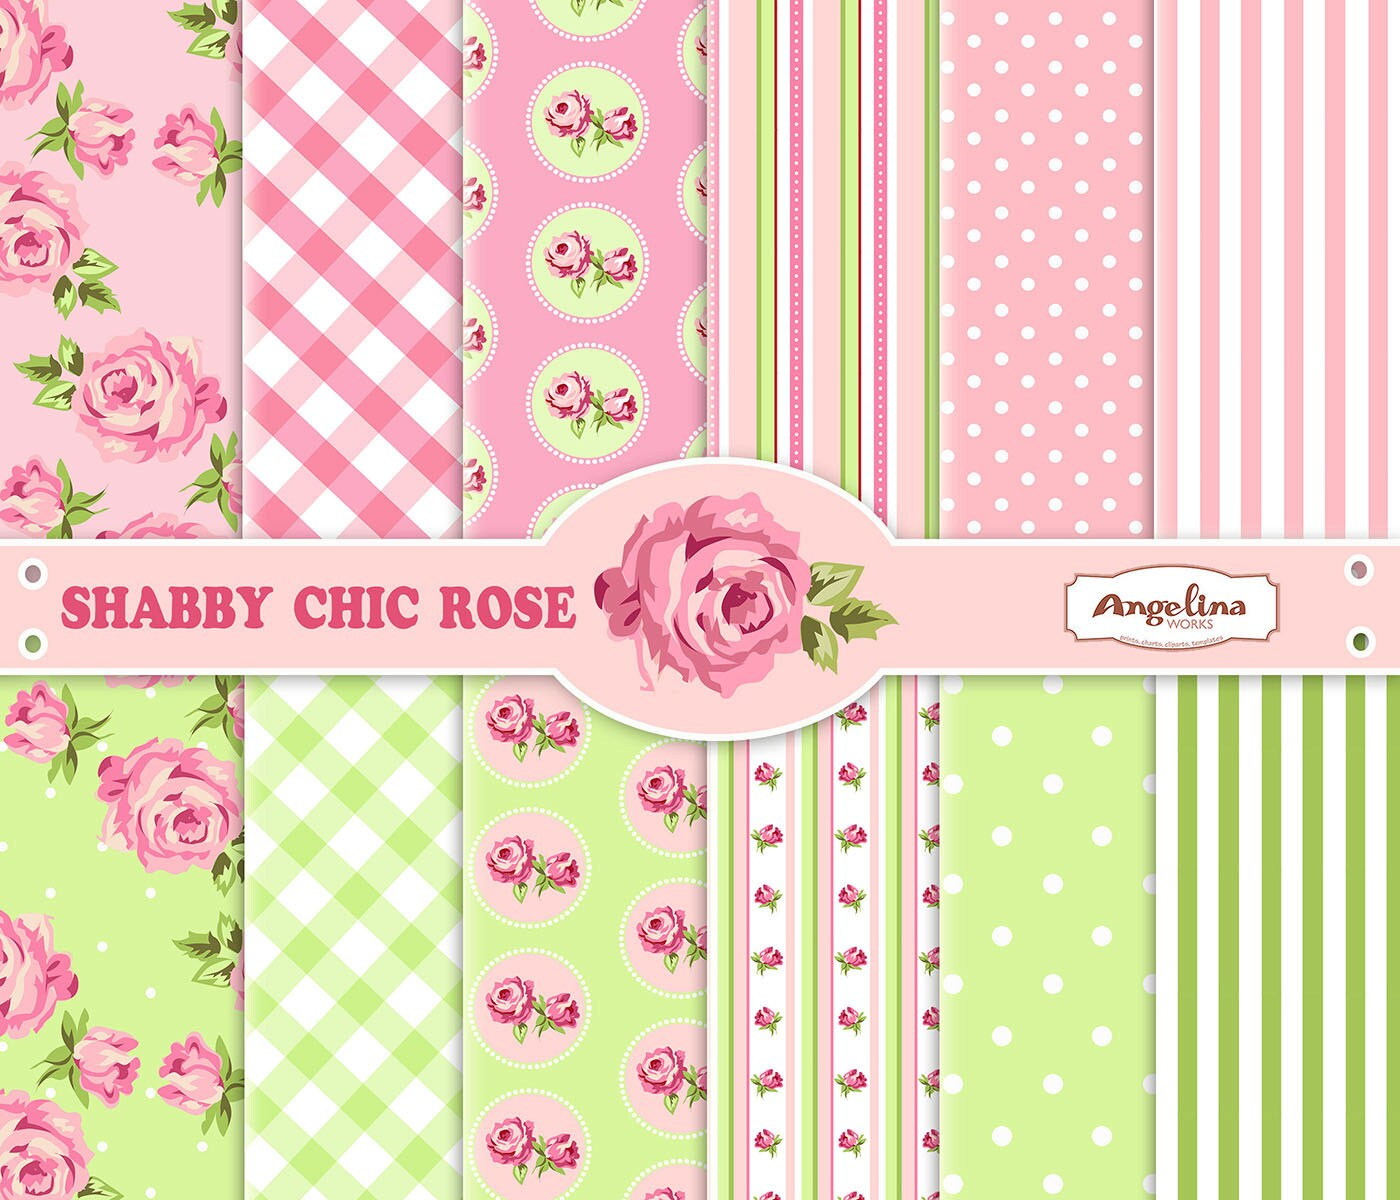 12 Shabby Chic Rose Pink and Green Digital Scrapbook ...